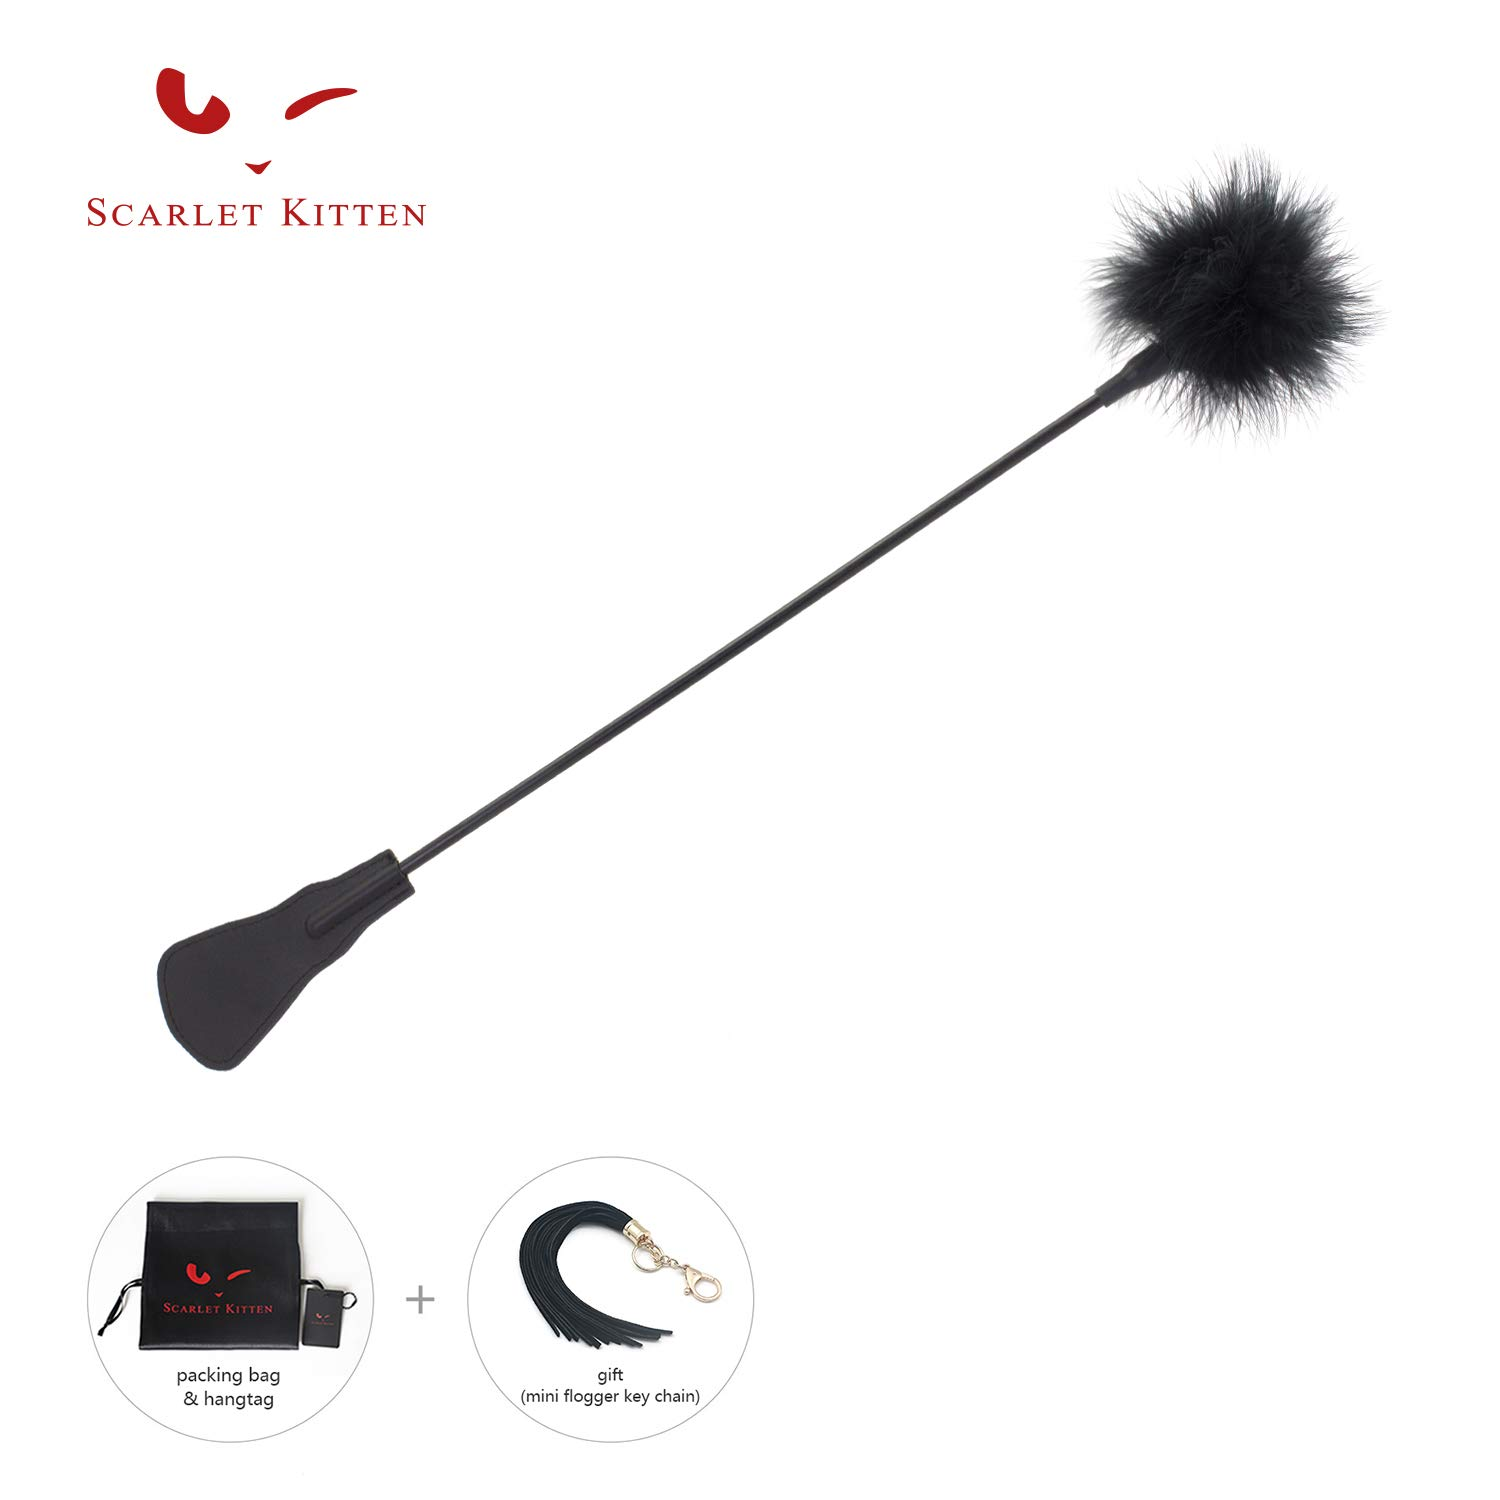 SCARLET KITTEN 21.65'' Black Ostrich Feather Tickler and Flirting Leather Riding Crop Whip by SCARLET KITTEN